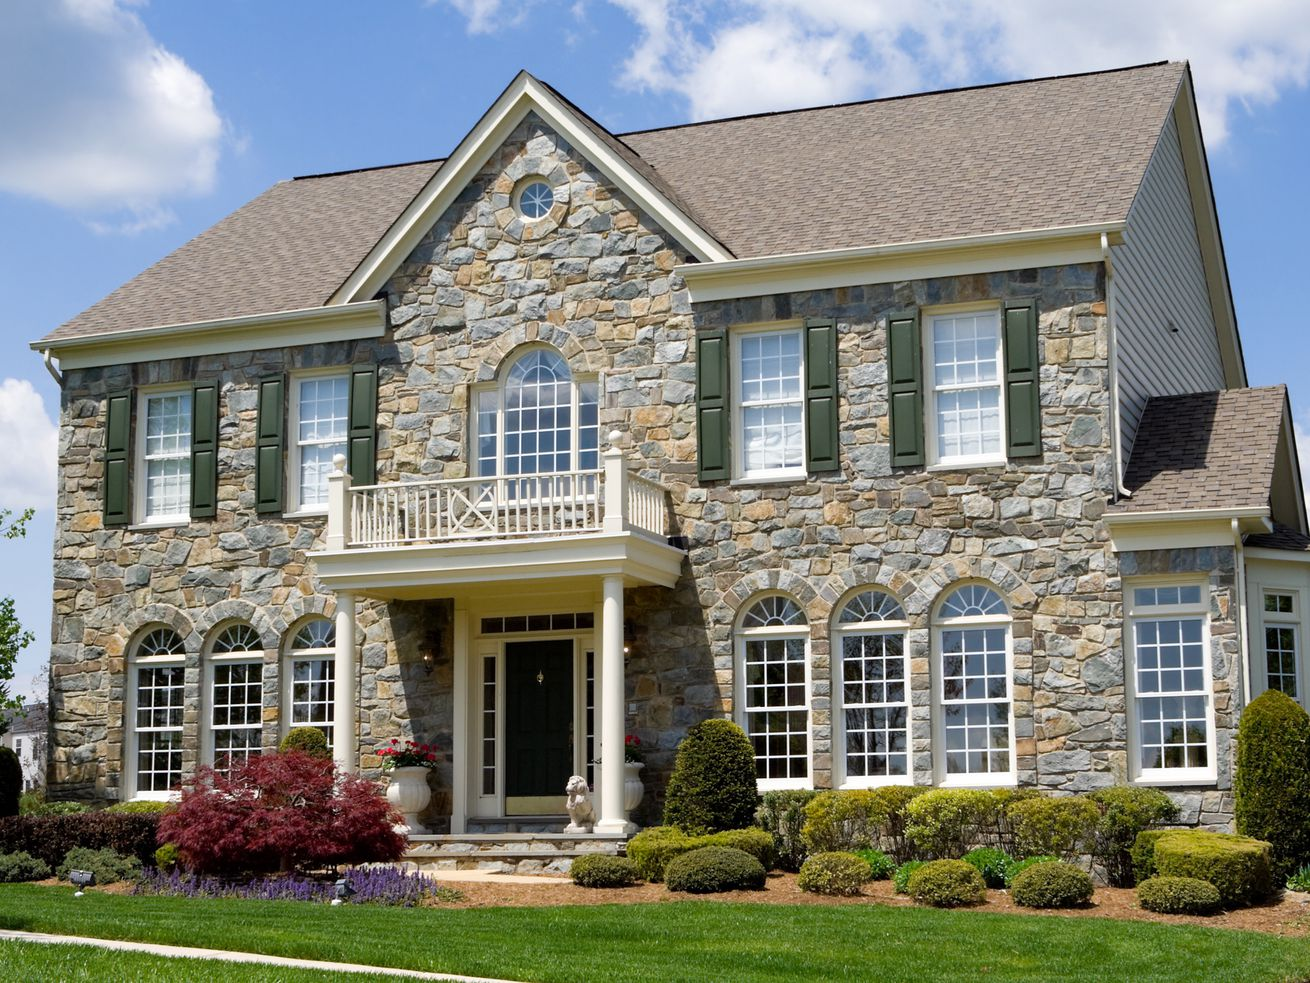 Well landscaped stone single family house.